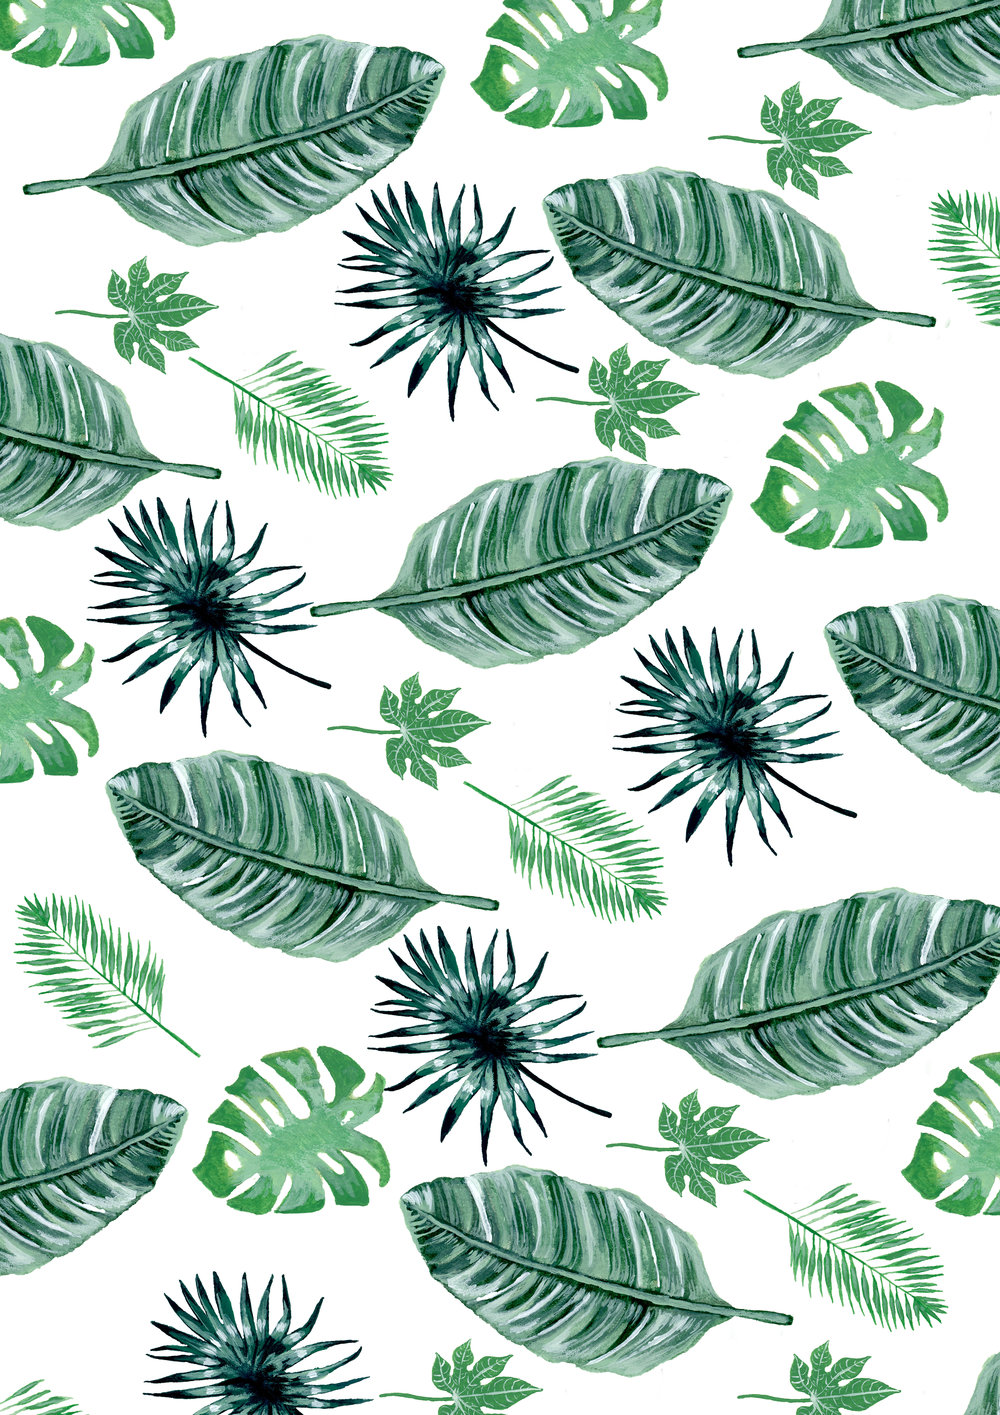 Tropical leaf pattern 300px.jpg